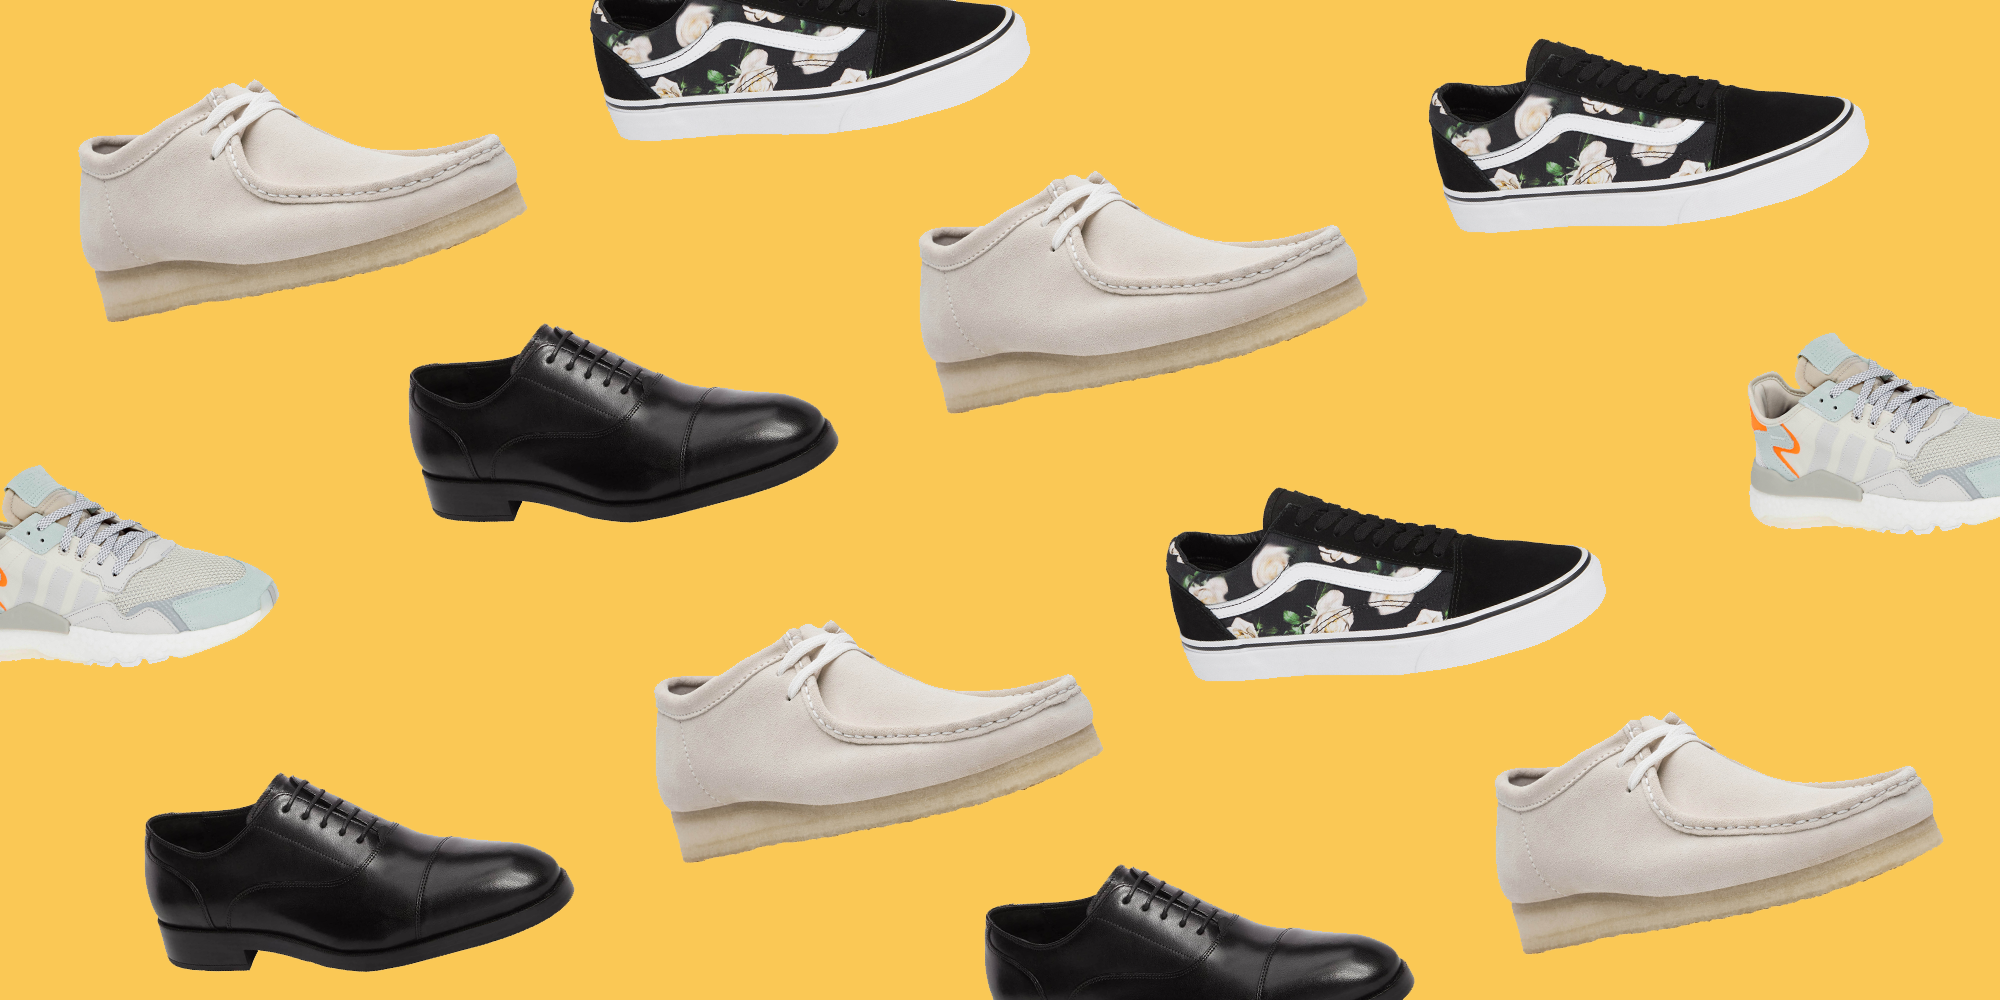 a27859b3ce The Best Men's Shoe Deals From Nordstrom's Half-Yearly Sale 2019